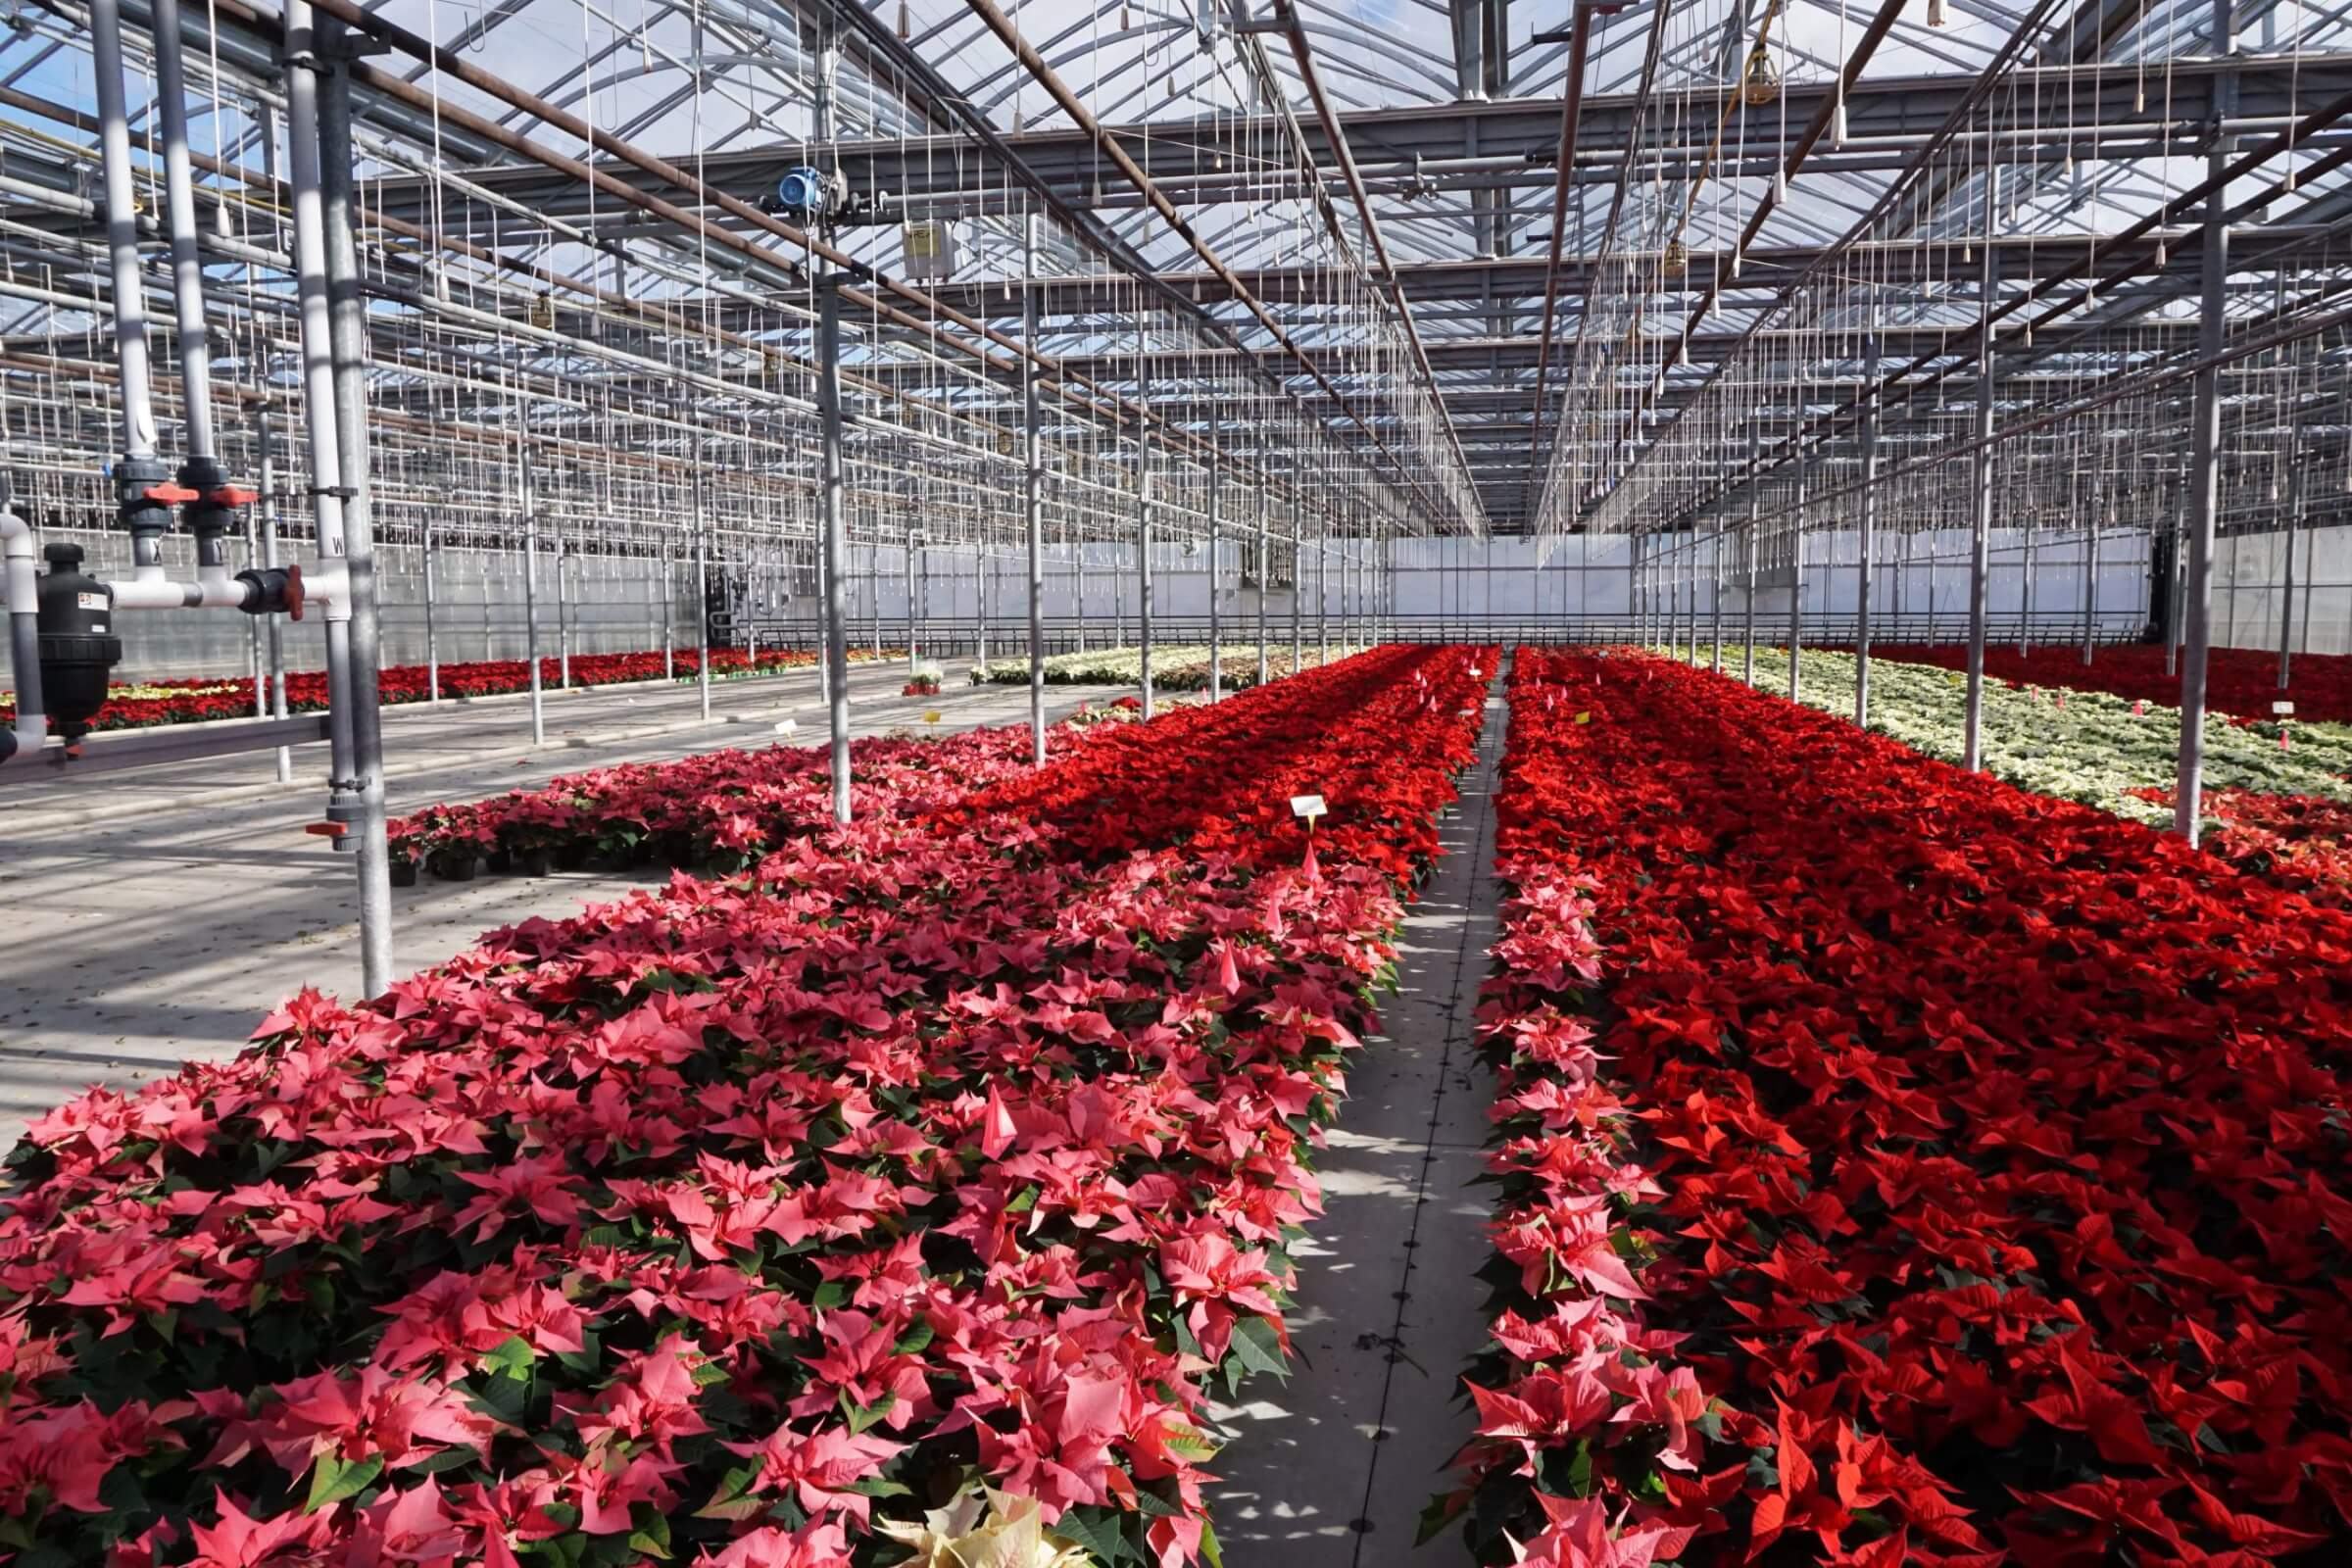 Poinsettias growing in a greenhouse